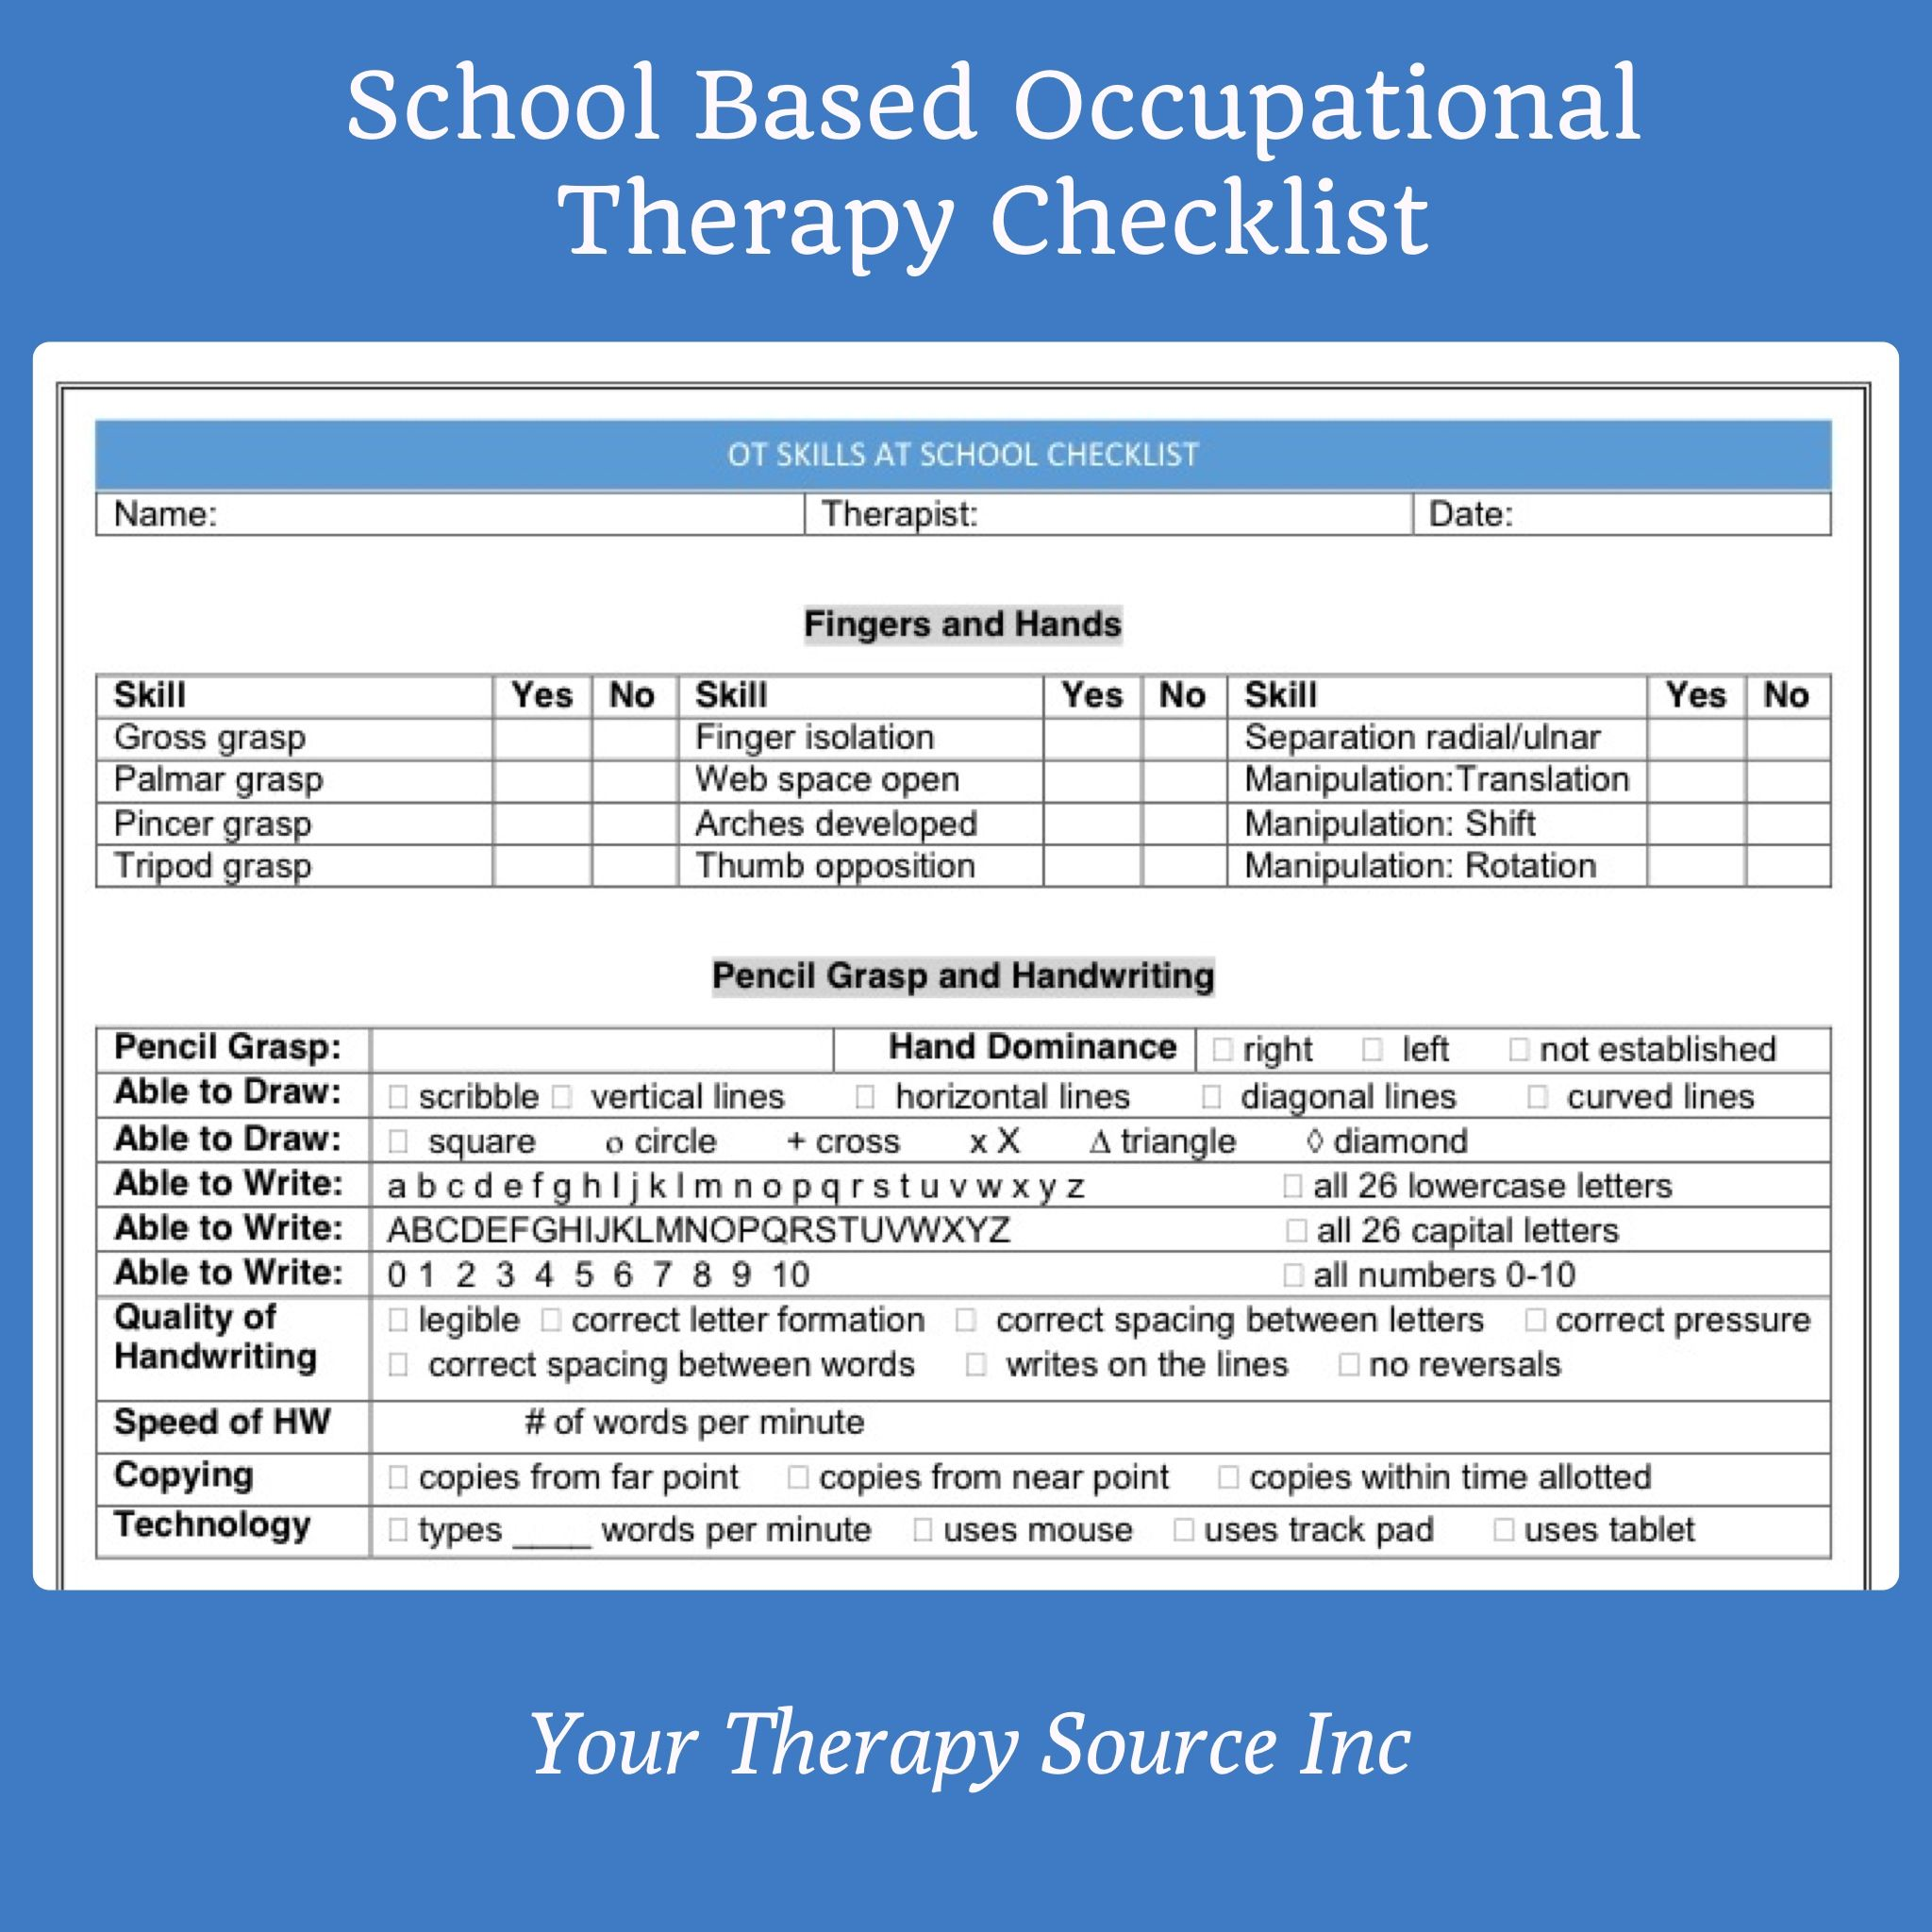 School Based Occupational Therapy Checklist